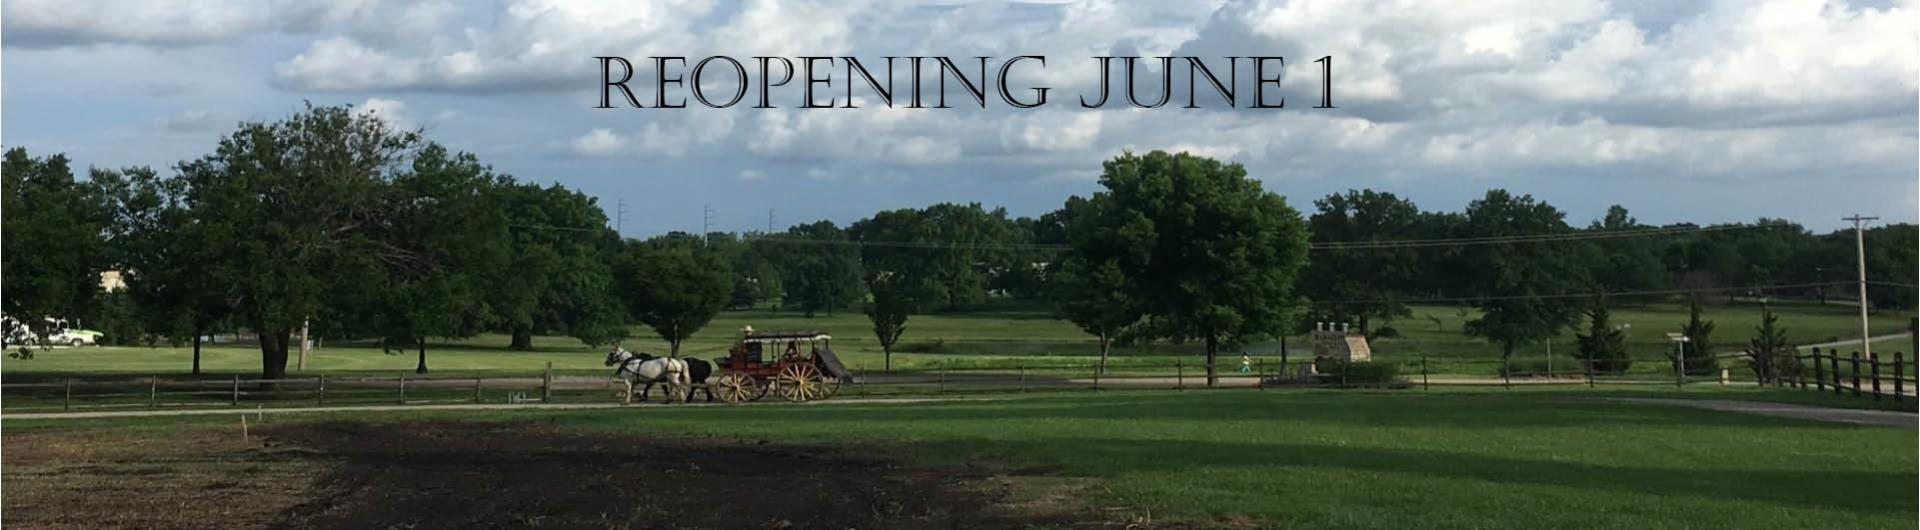 Reopening June 1